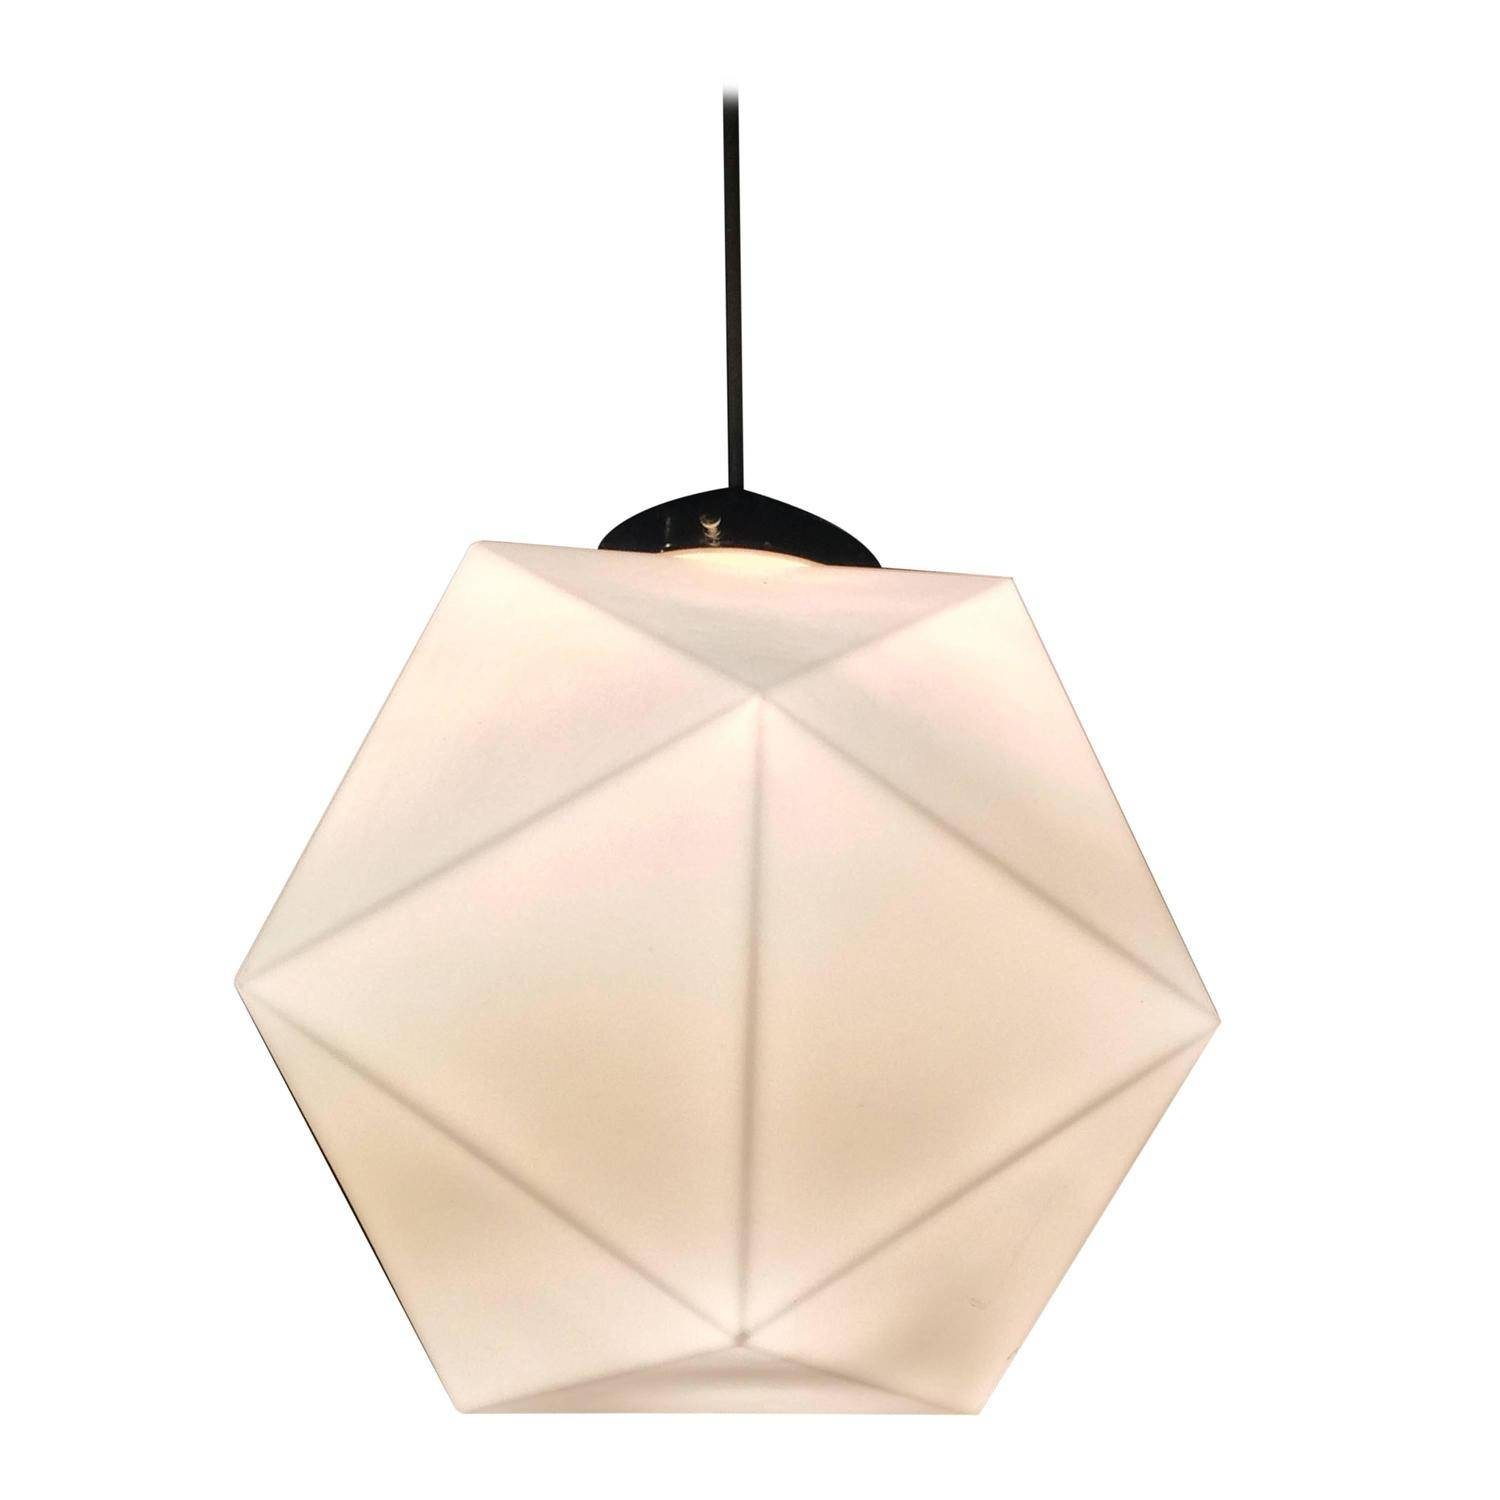 Mid-Century Faceted Milk Glass Geometric Pendant Light At 1Stdibs with regard to Milk Glass Pendant Lights Fixtures (Image 9 of 15)